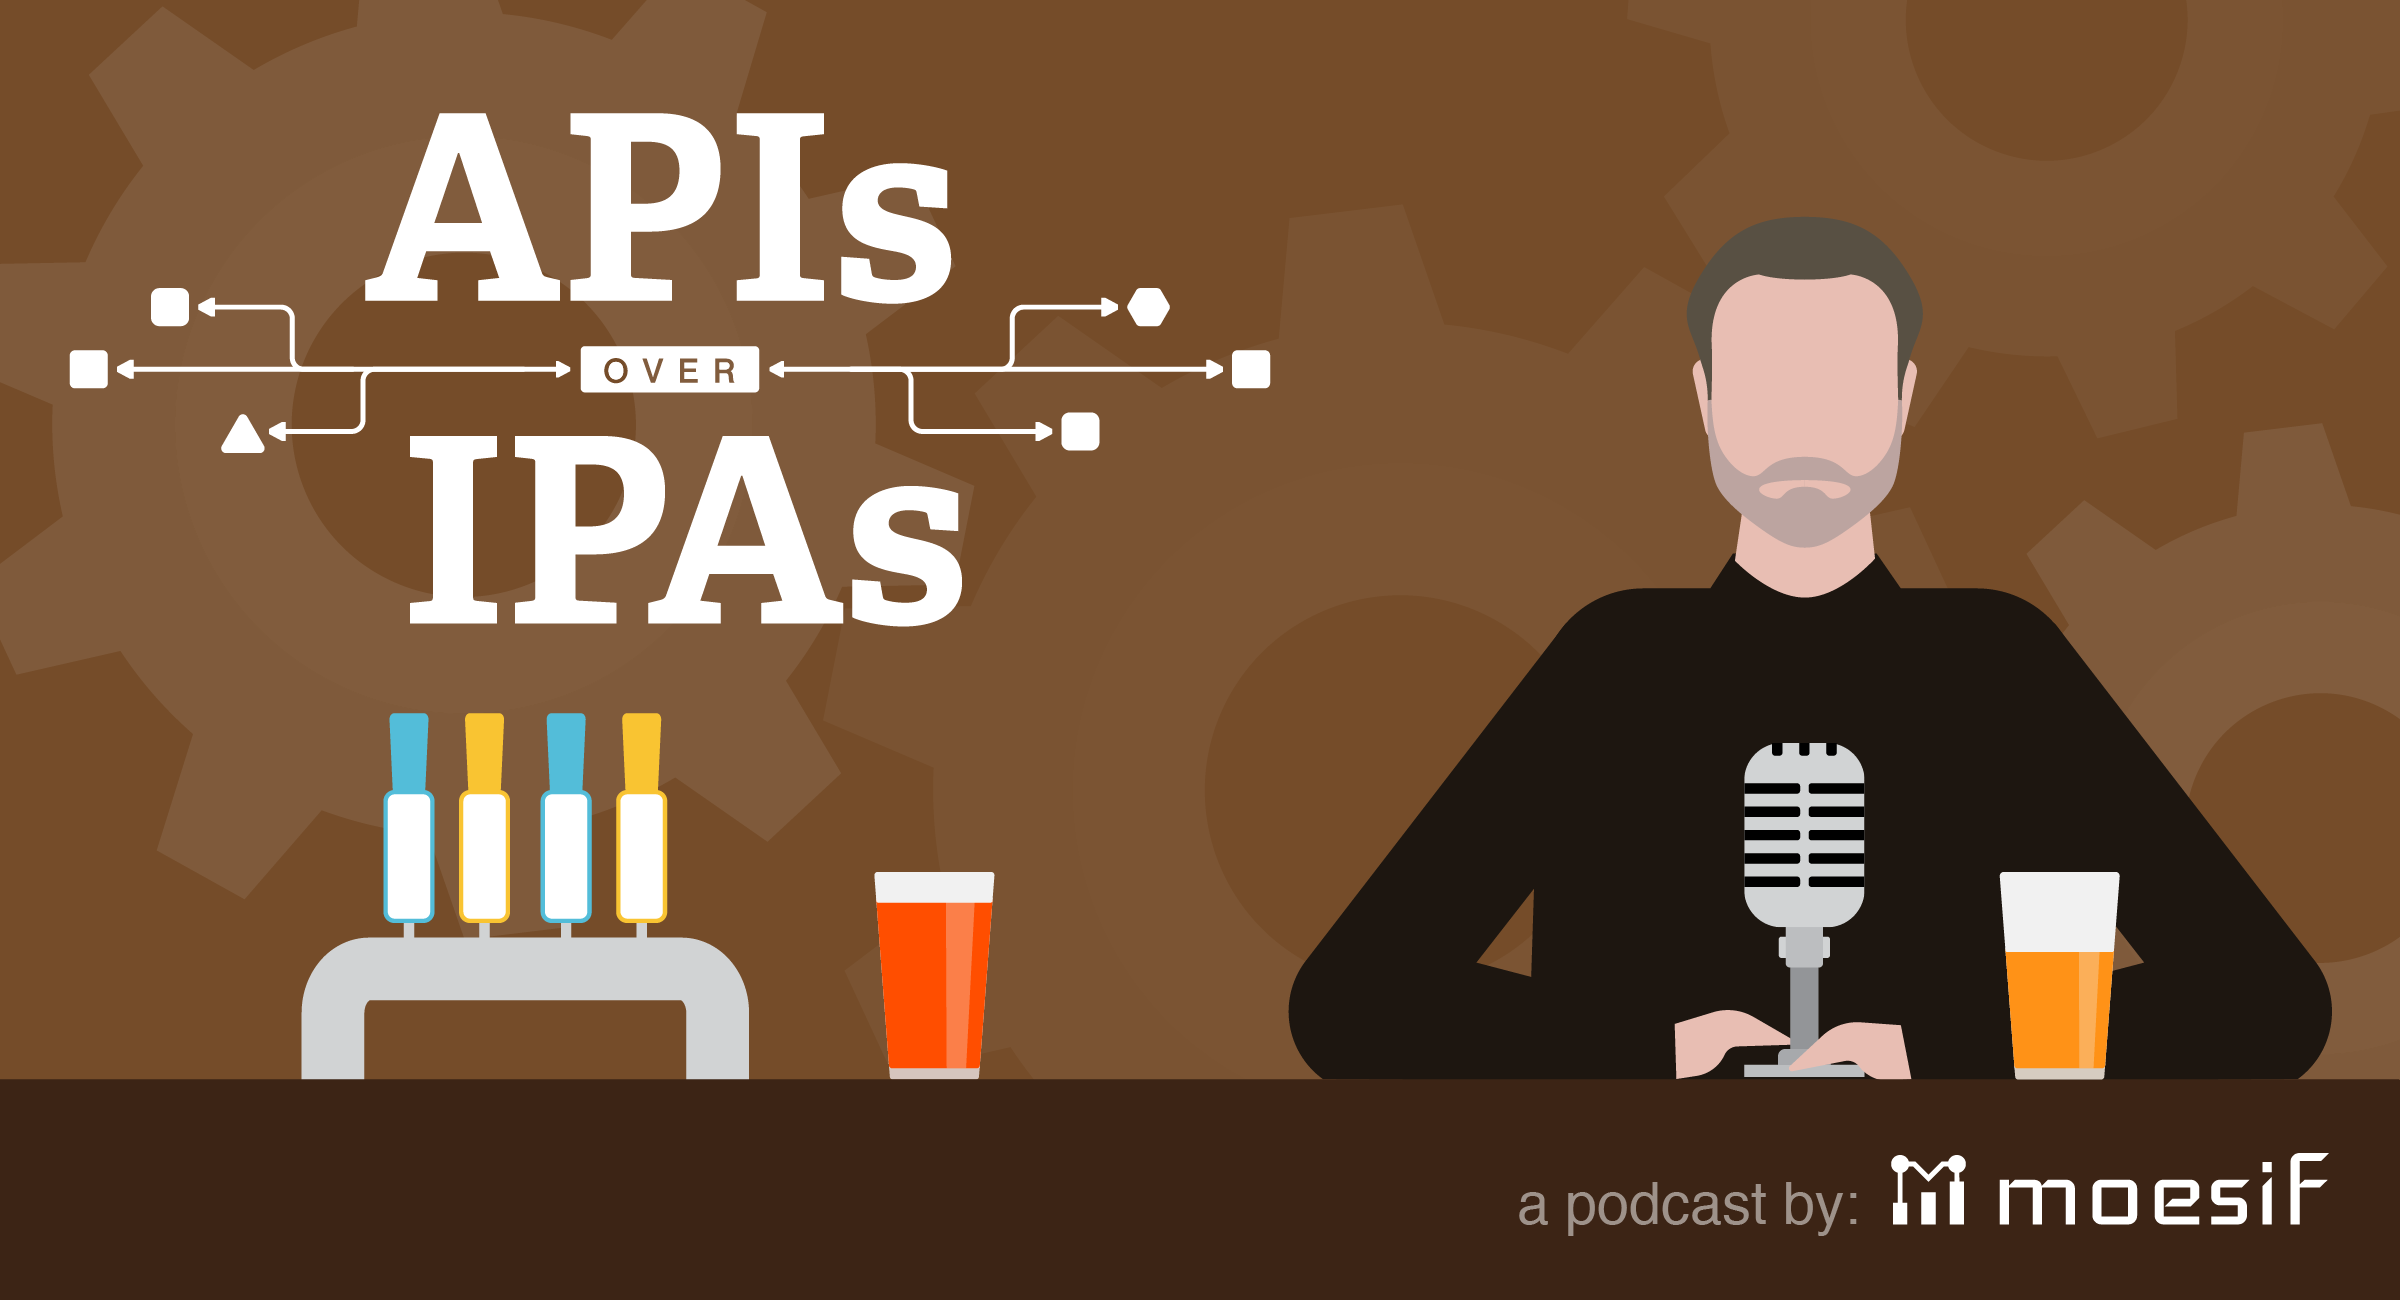 Podcast with Charles Miller on Documentation Best Practices